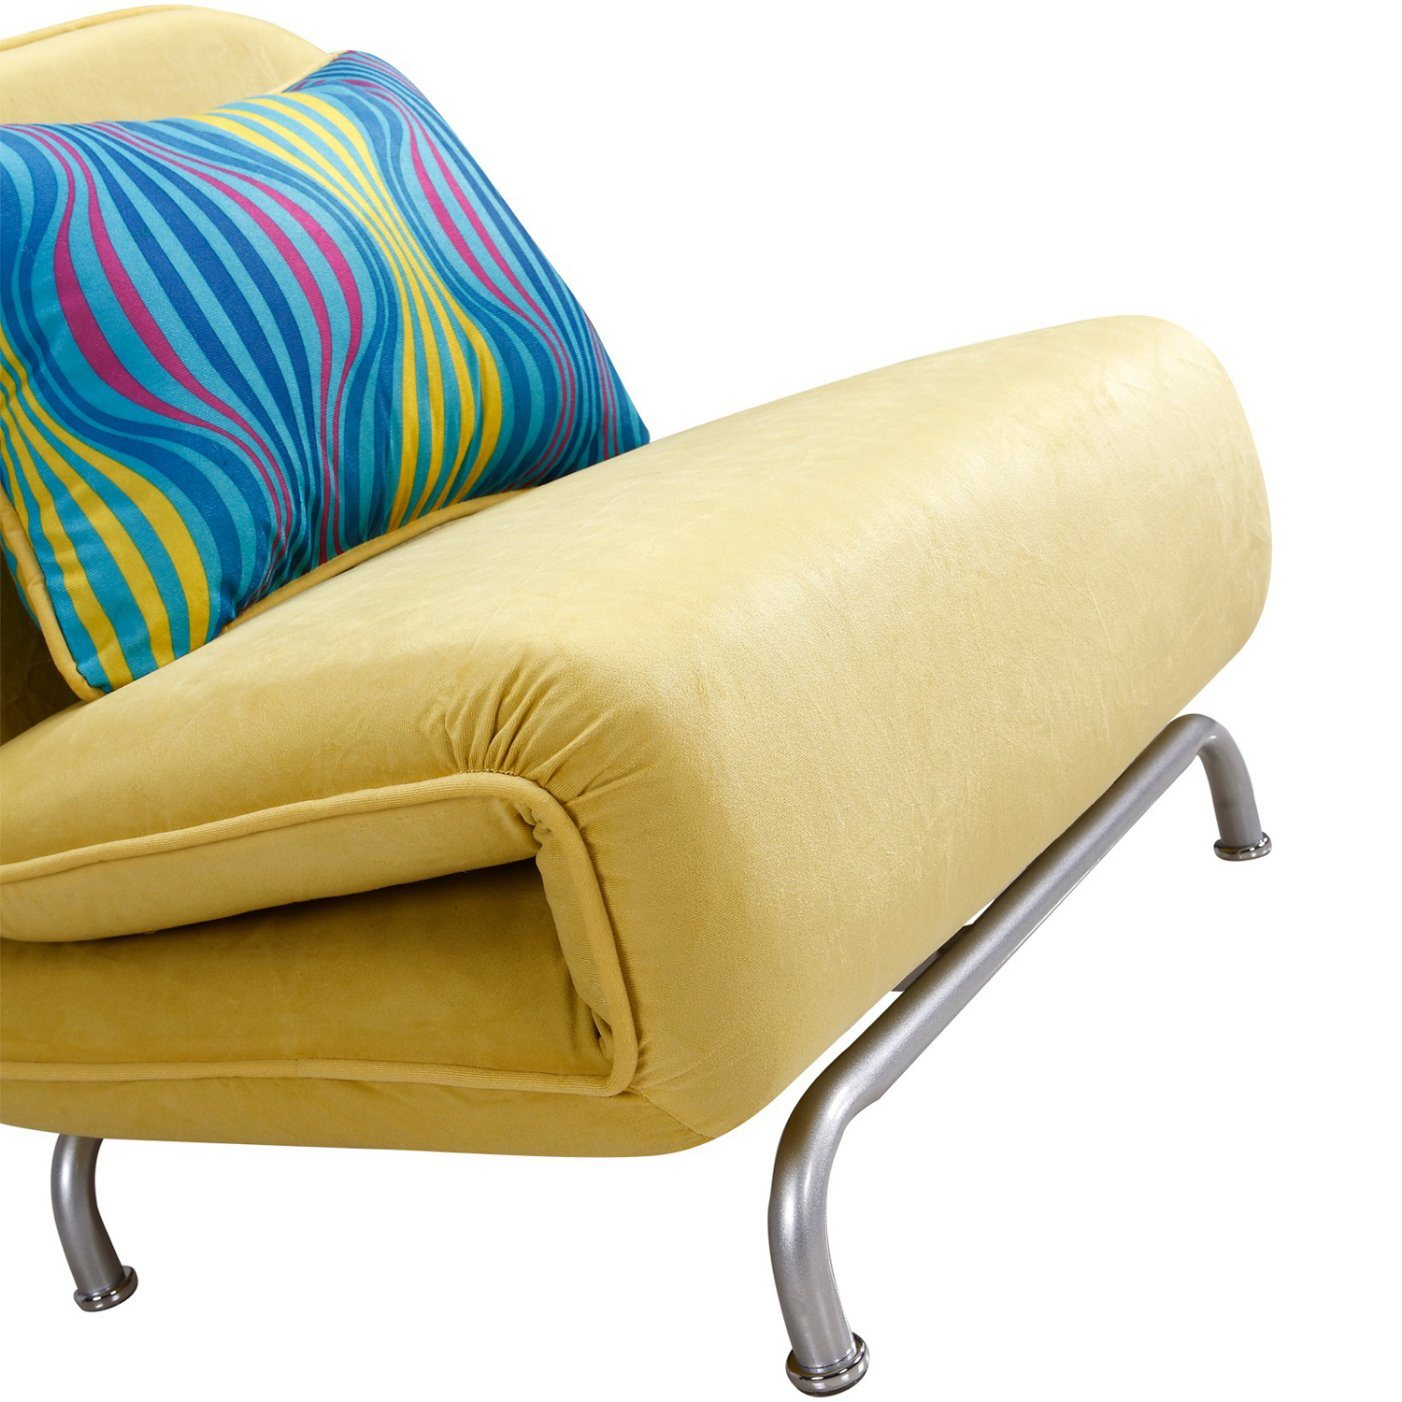 Modern Rotating Single Sofa Chair With Bed Function